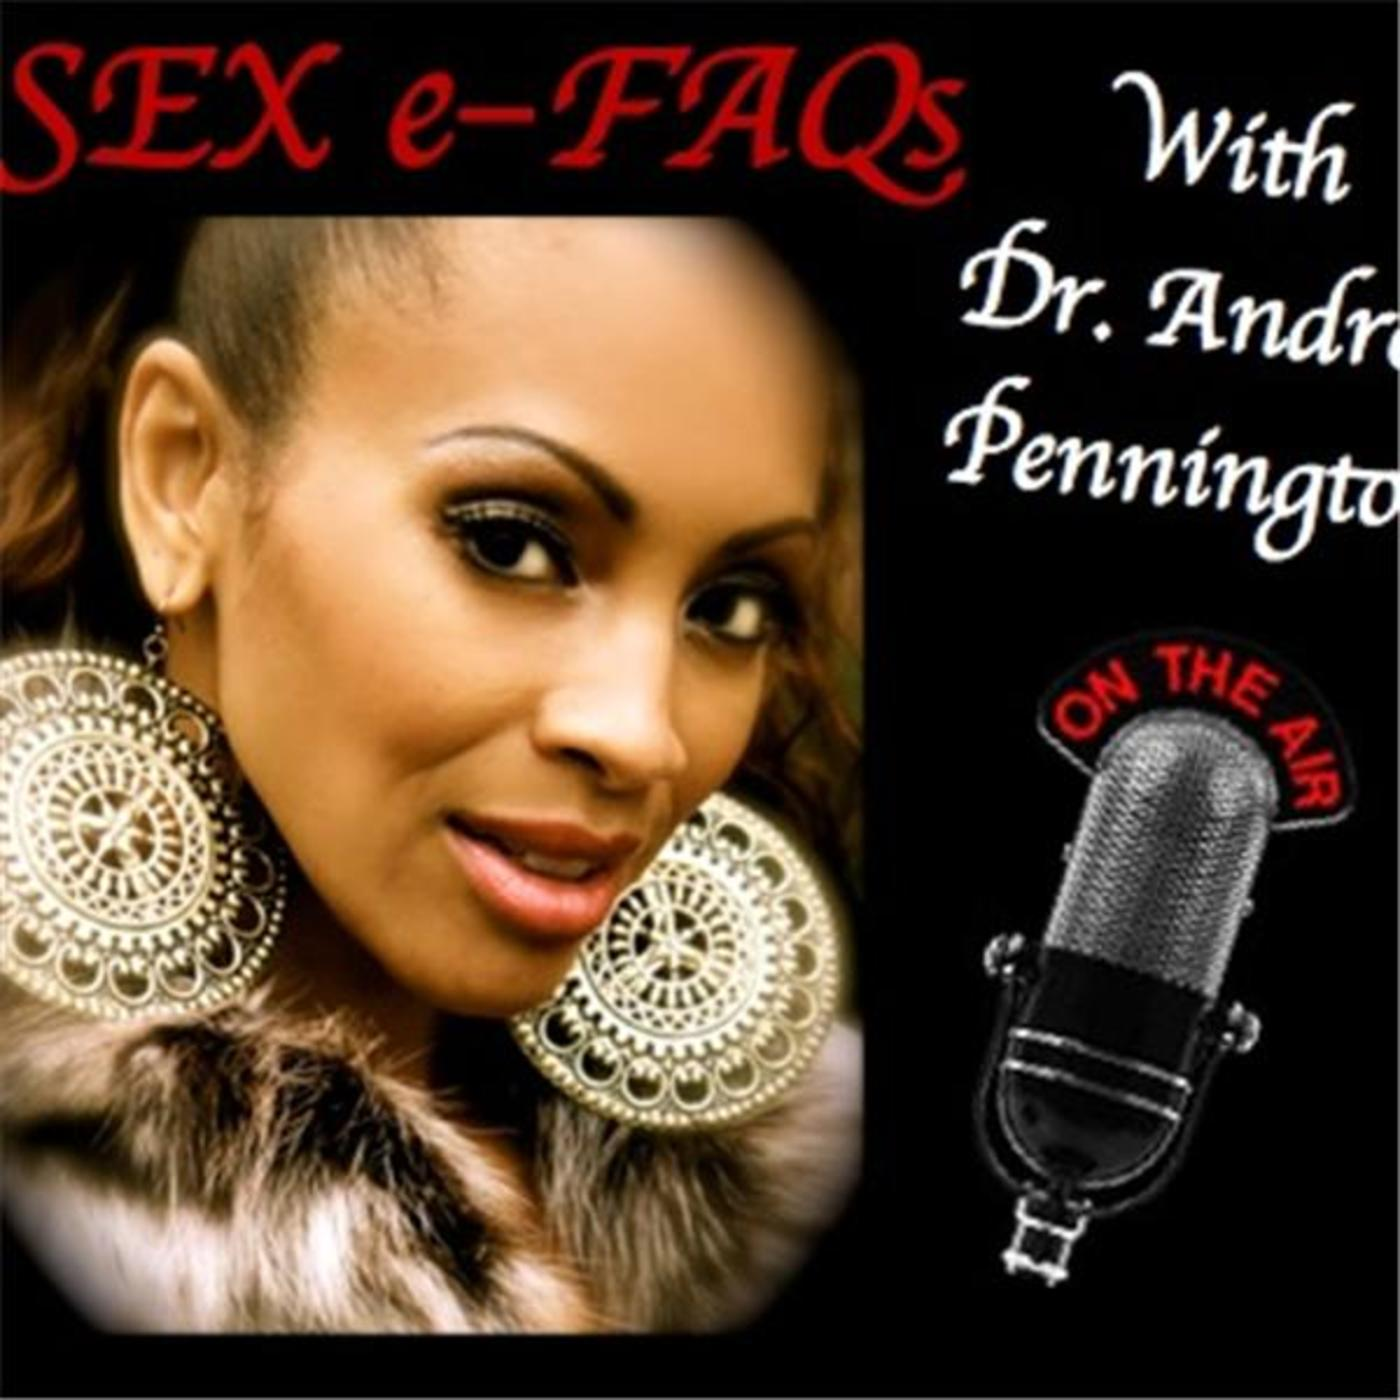 Dr. Andrea Pennington - SEX eFAQs sexuality, love & relationship Q&A